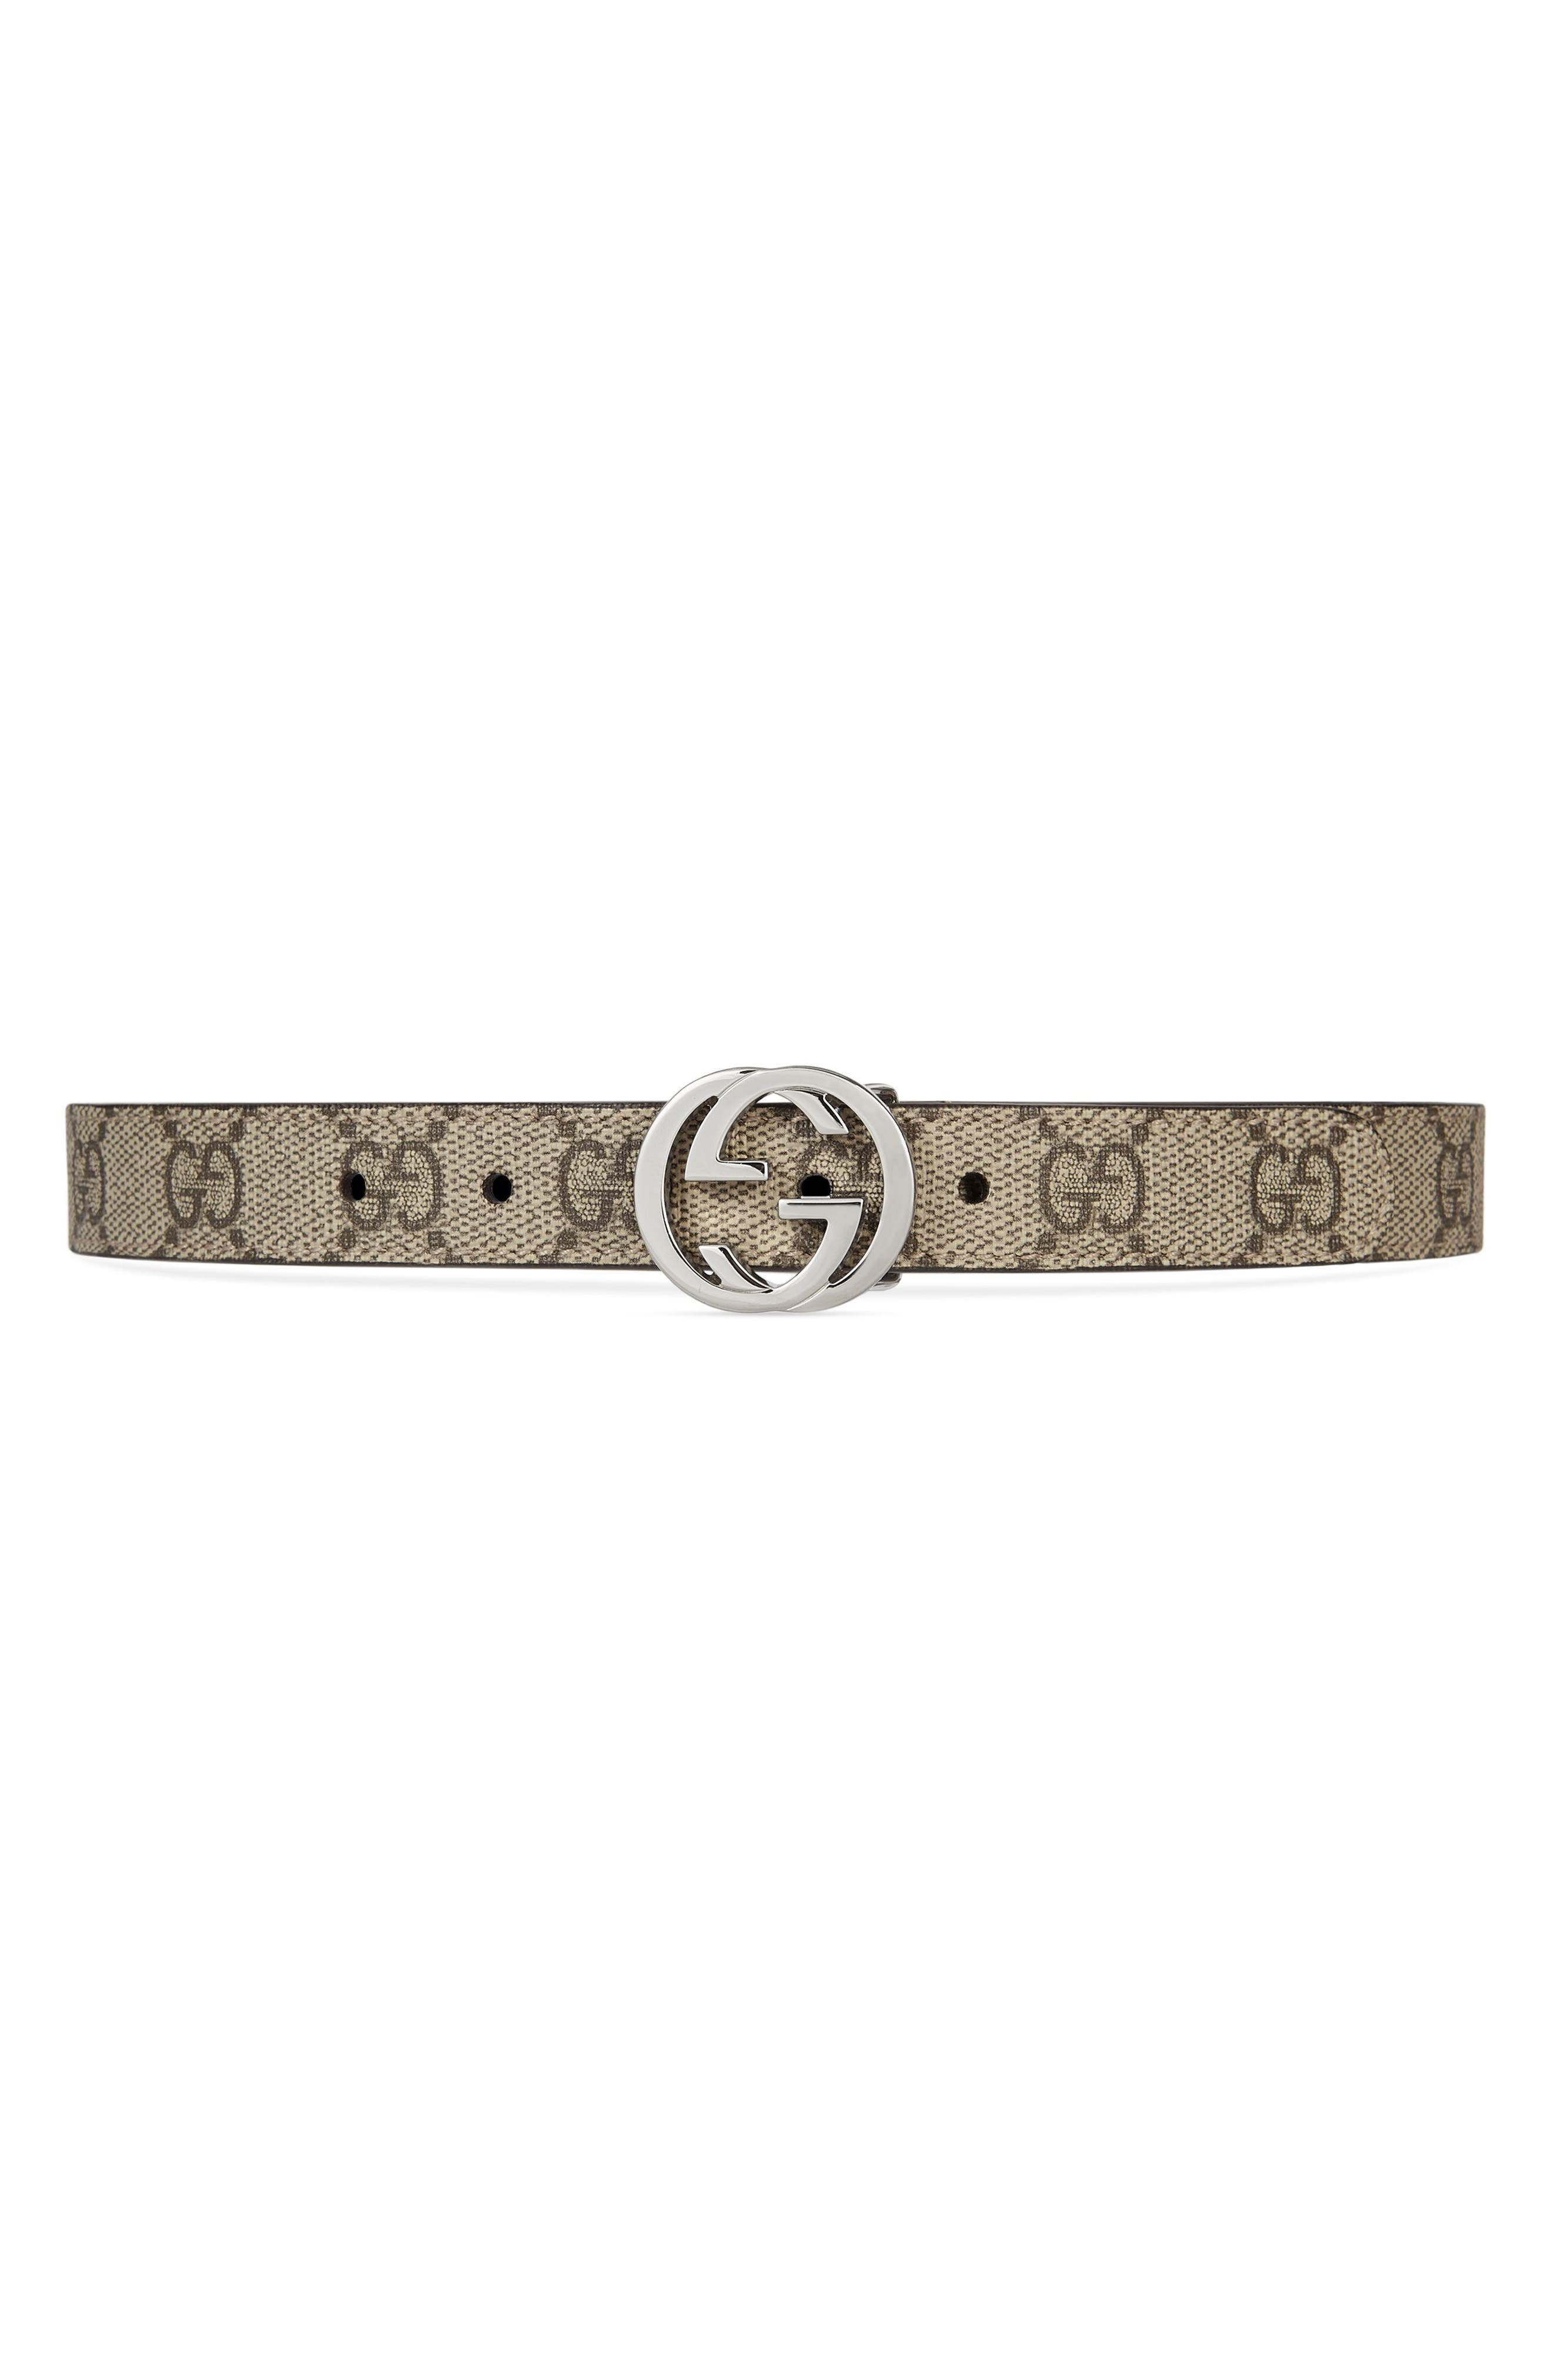 Canvas Belt,                         Main,                         color, BEIGE/ EBONY